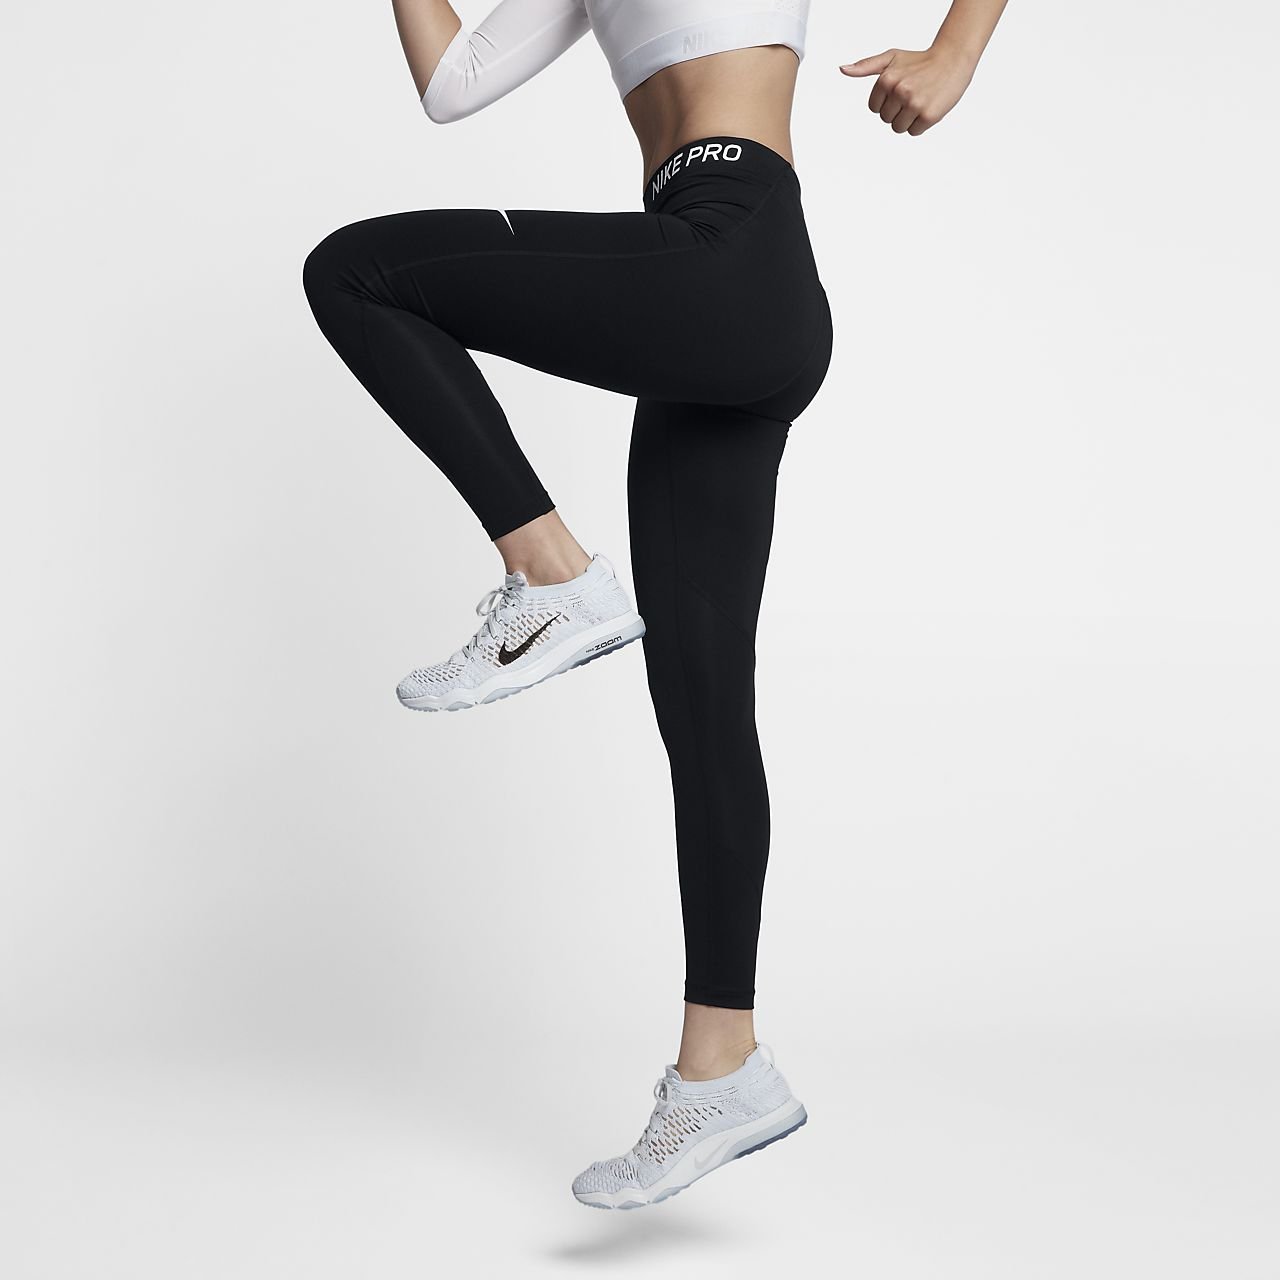 77b8d935 Nike Pro Women's Mid-Rise Training Tights. Nike.com